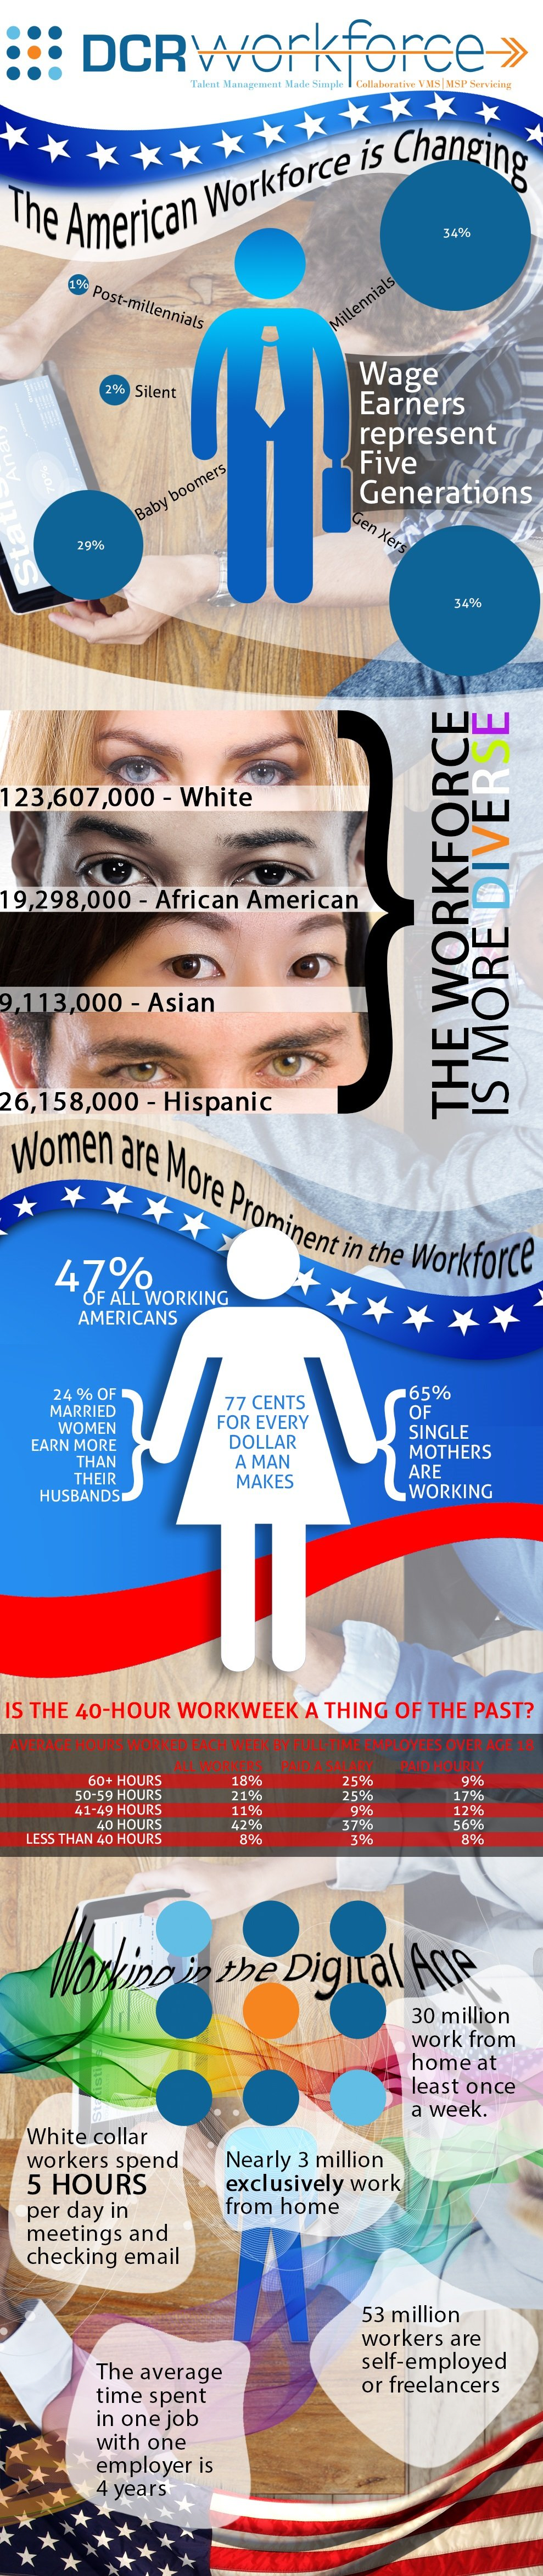 DCR-Workforce-Labor-Day-Workforce-is-Changing-Infographic12 (1)